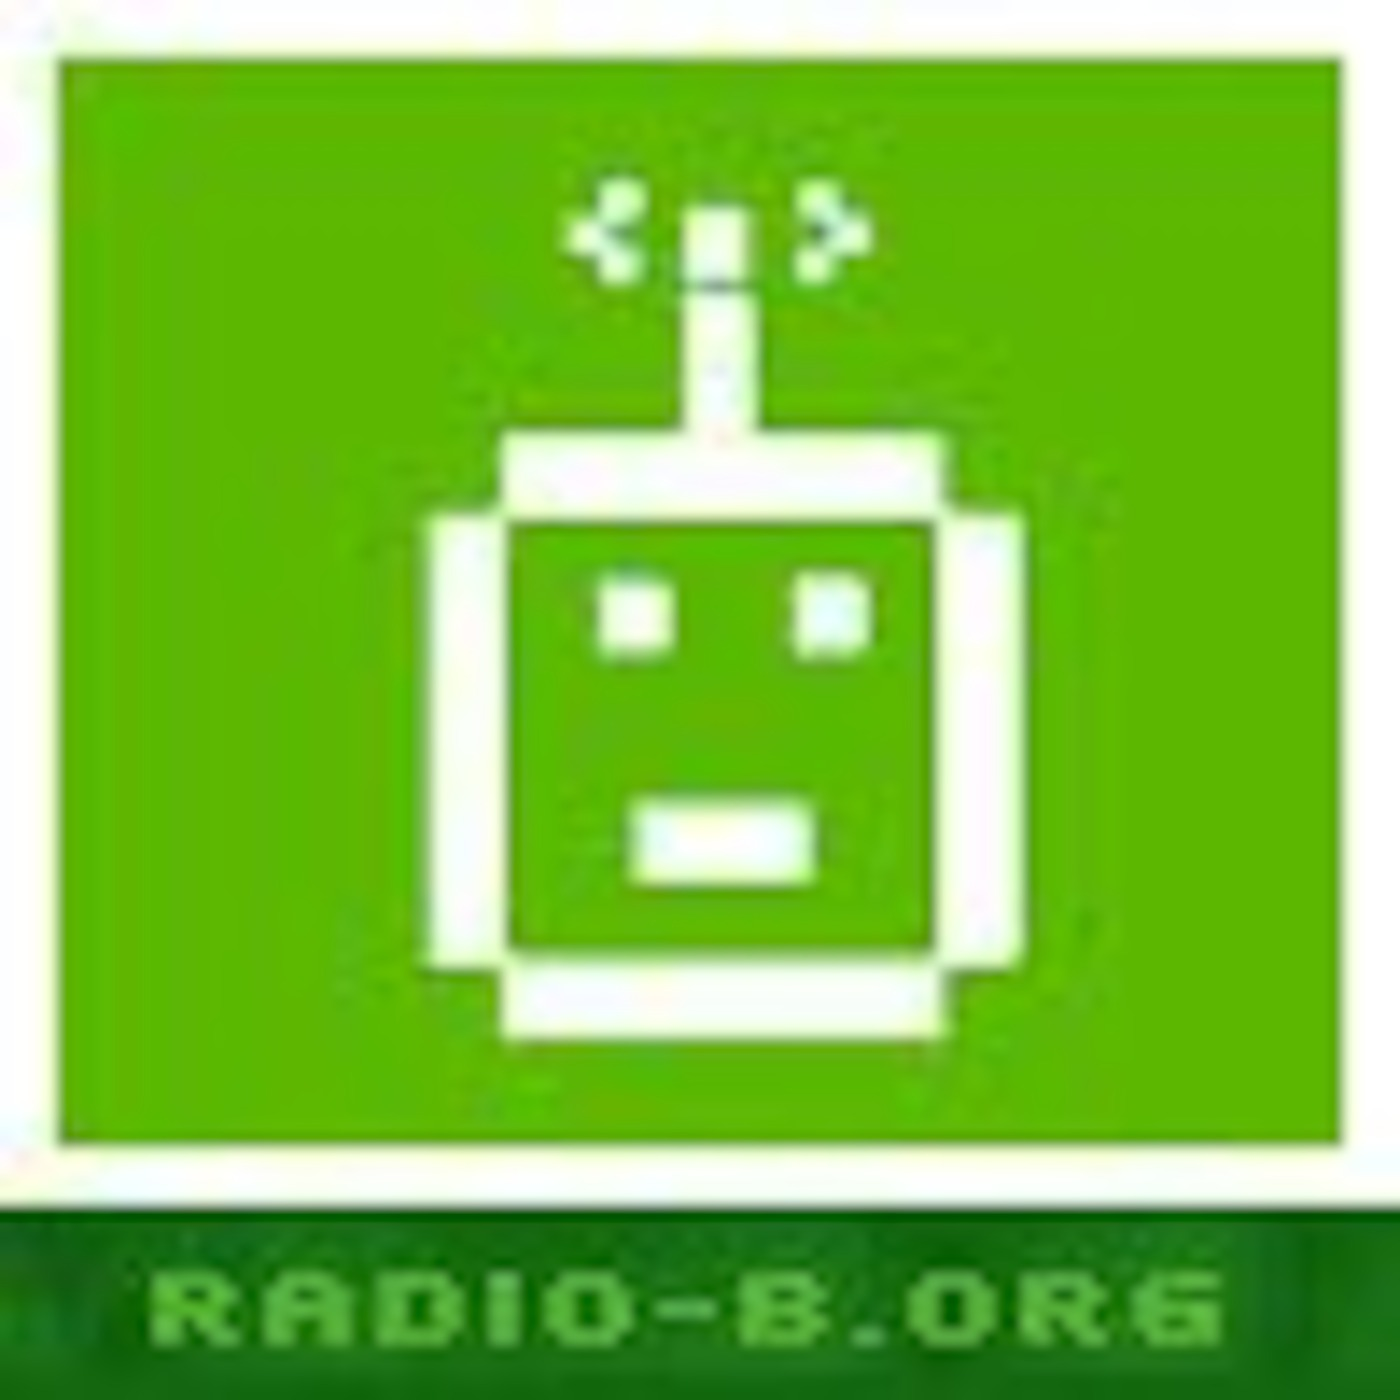 Los Podcast de Radio-b.org